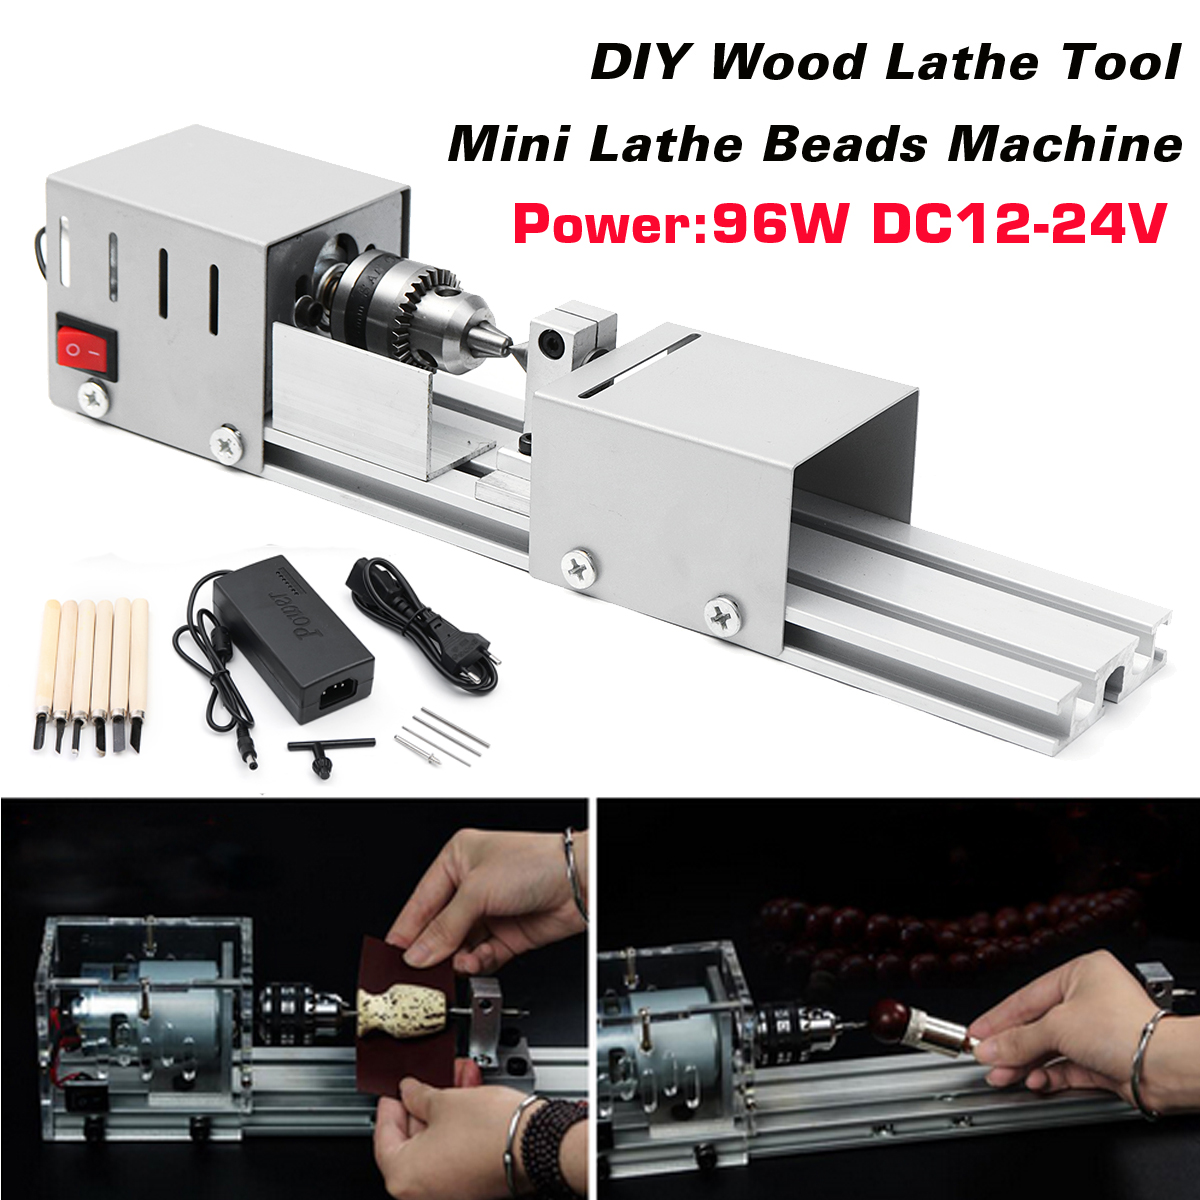 96W Mini Lathe Beads Machine Woodwork DIY Lathe Standard Set with Power DC12-24V carving cutter wolike mini lathe beads machine woodwork diy lathe standard set with power dc12 24v carving cutter wood lathe